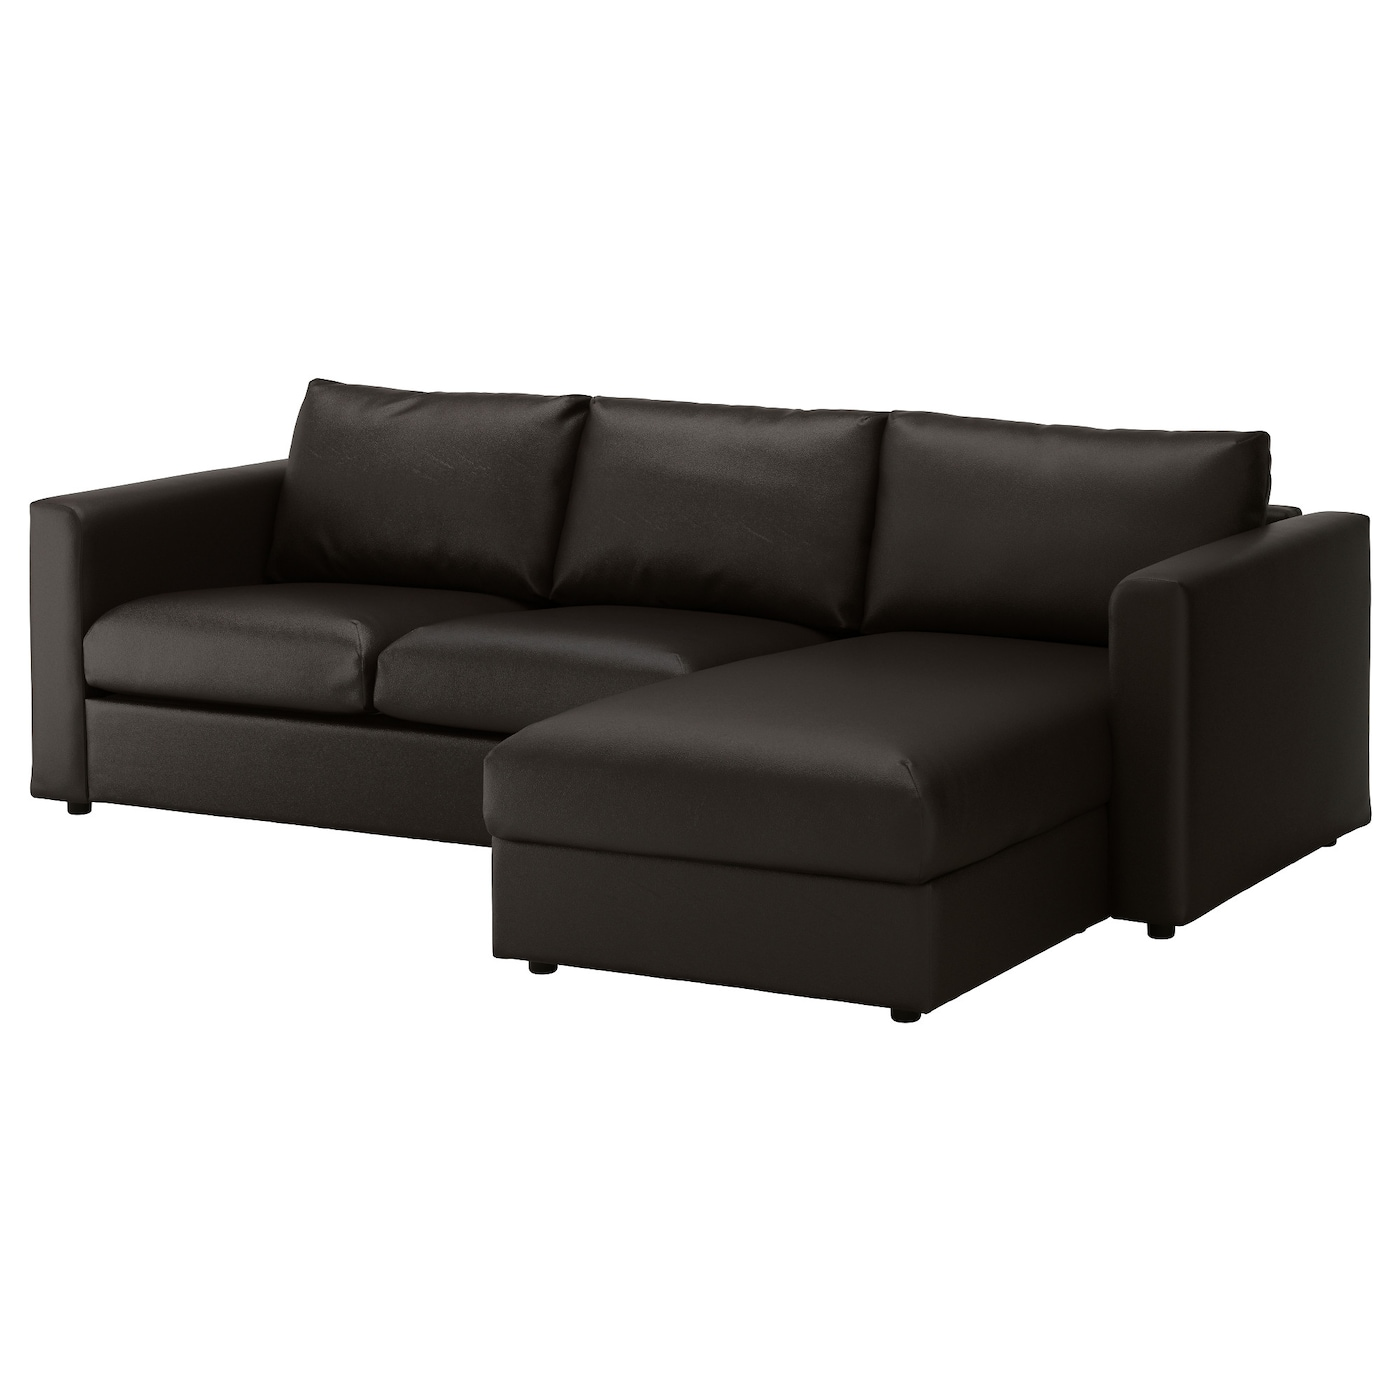 vimle 3 seat sofa with chaise longue farsta black ikea For3 Seat Sofa With Chaise